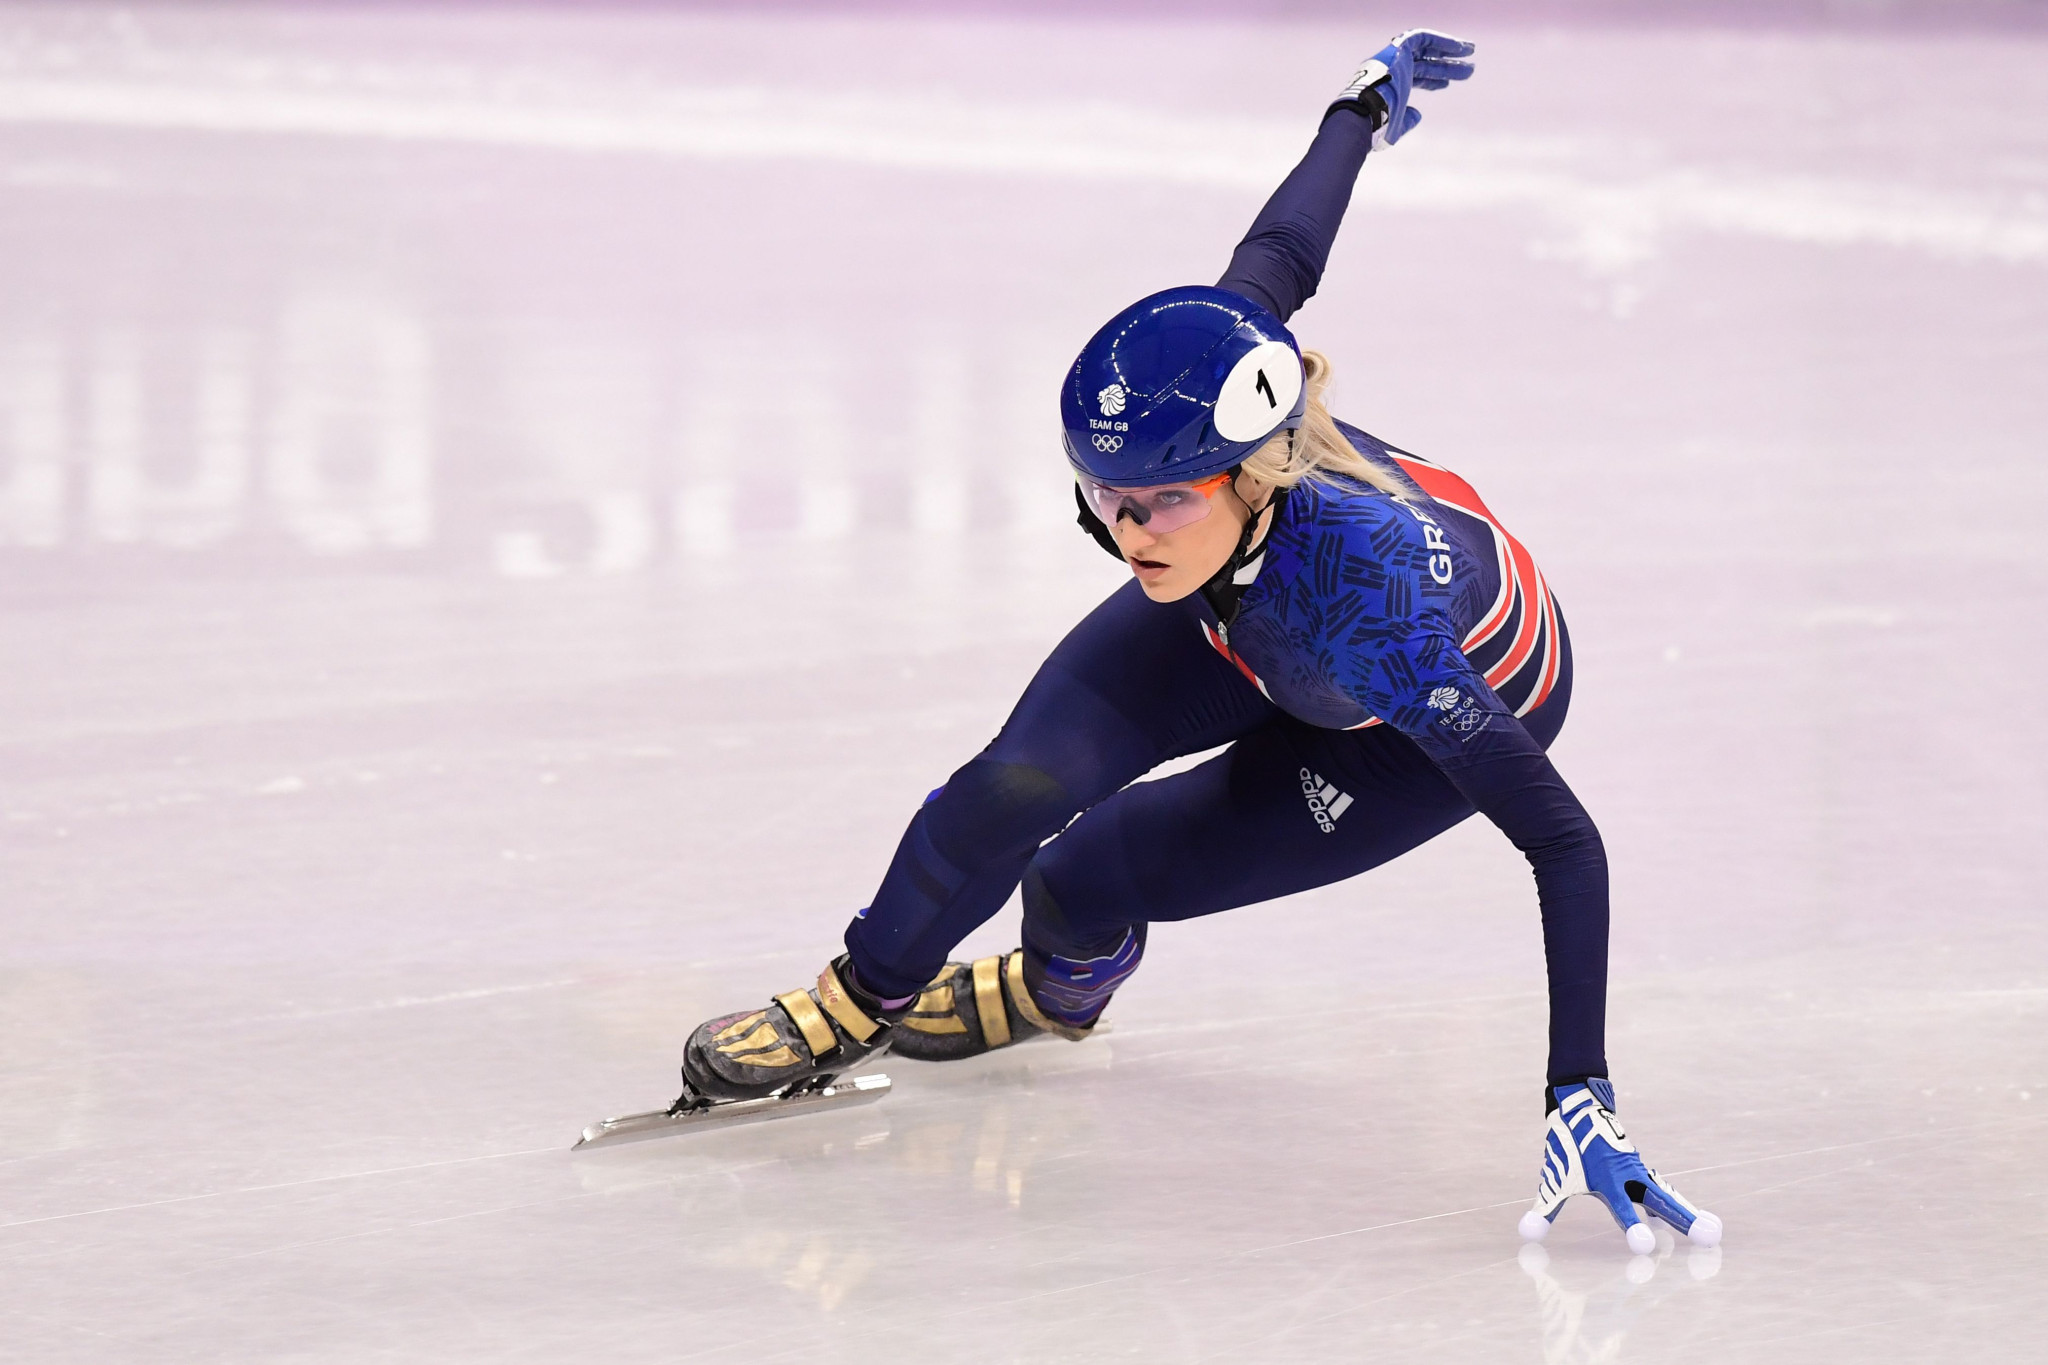 Britain forced to withdraw from ISU World Short Track Speed Skating Championships